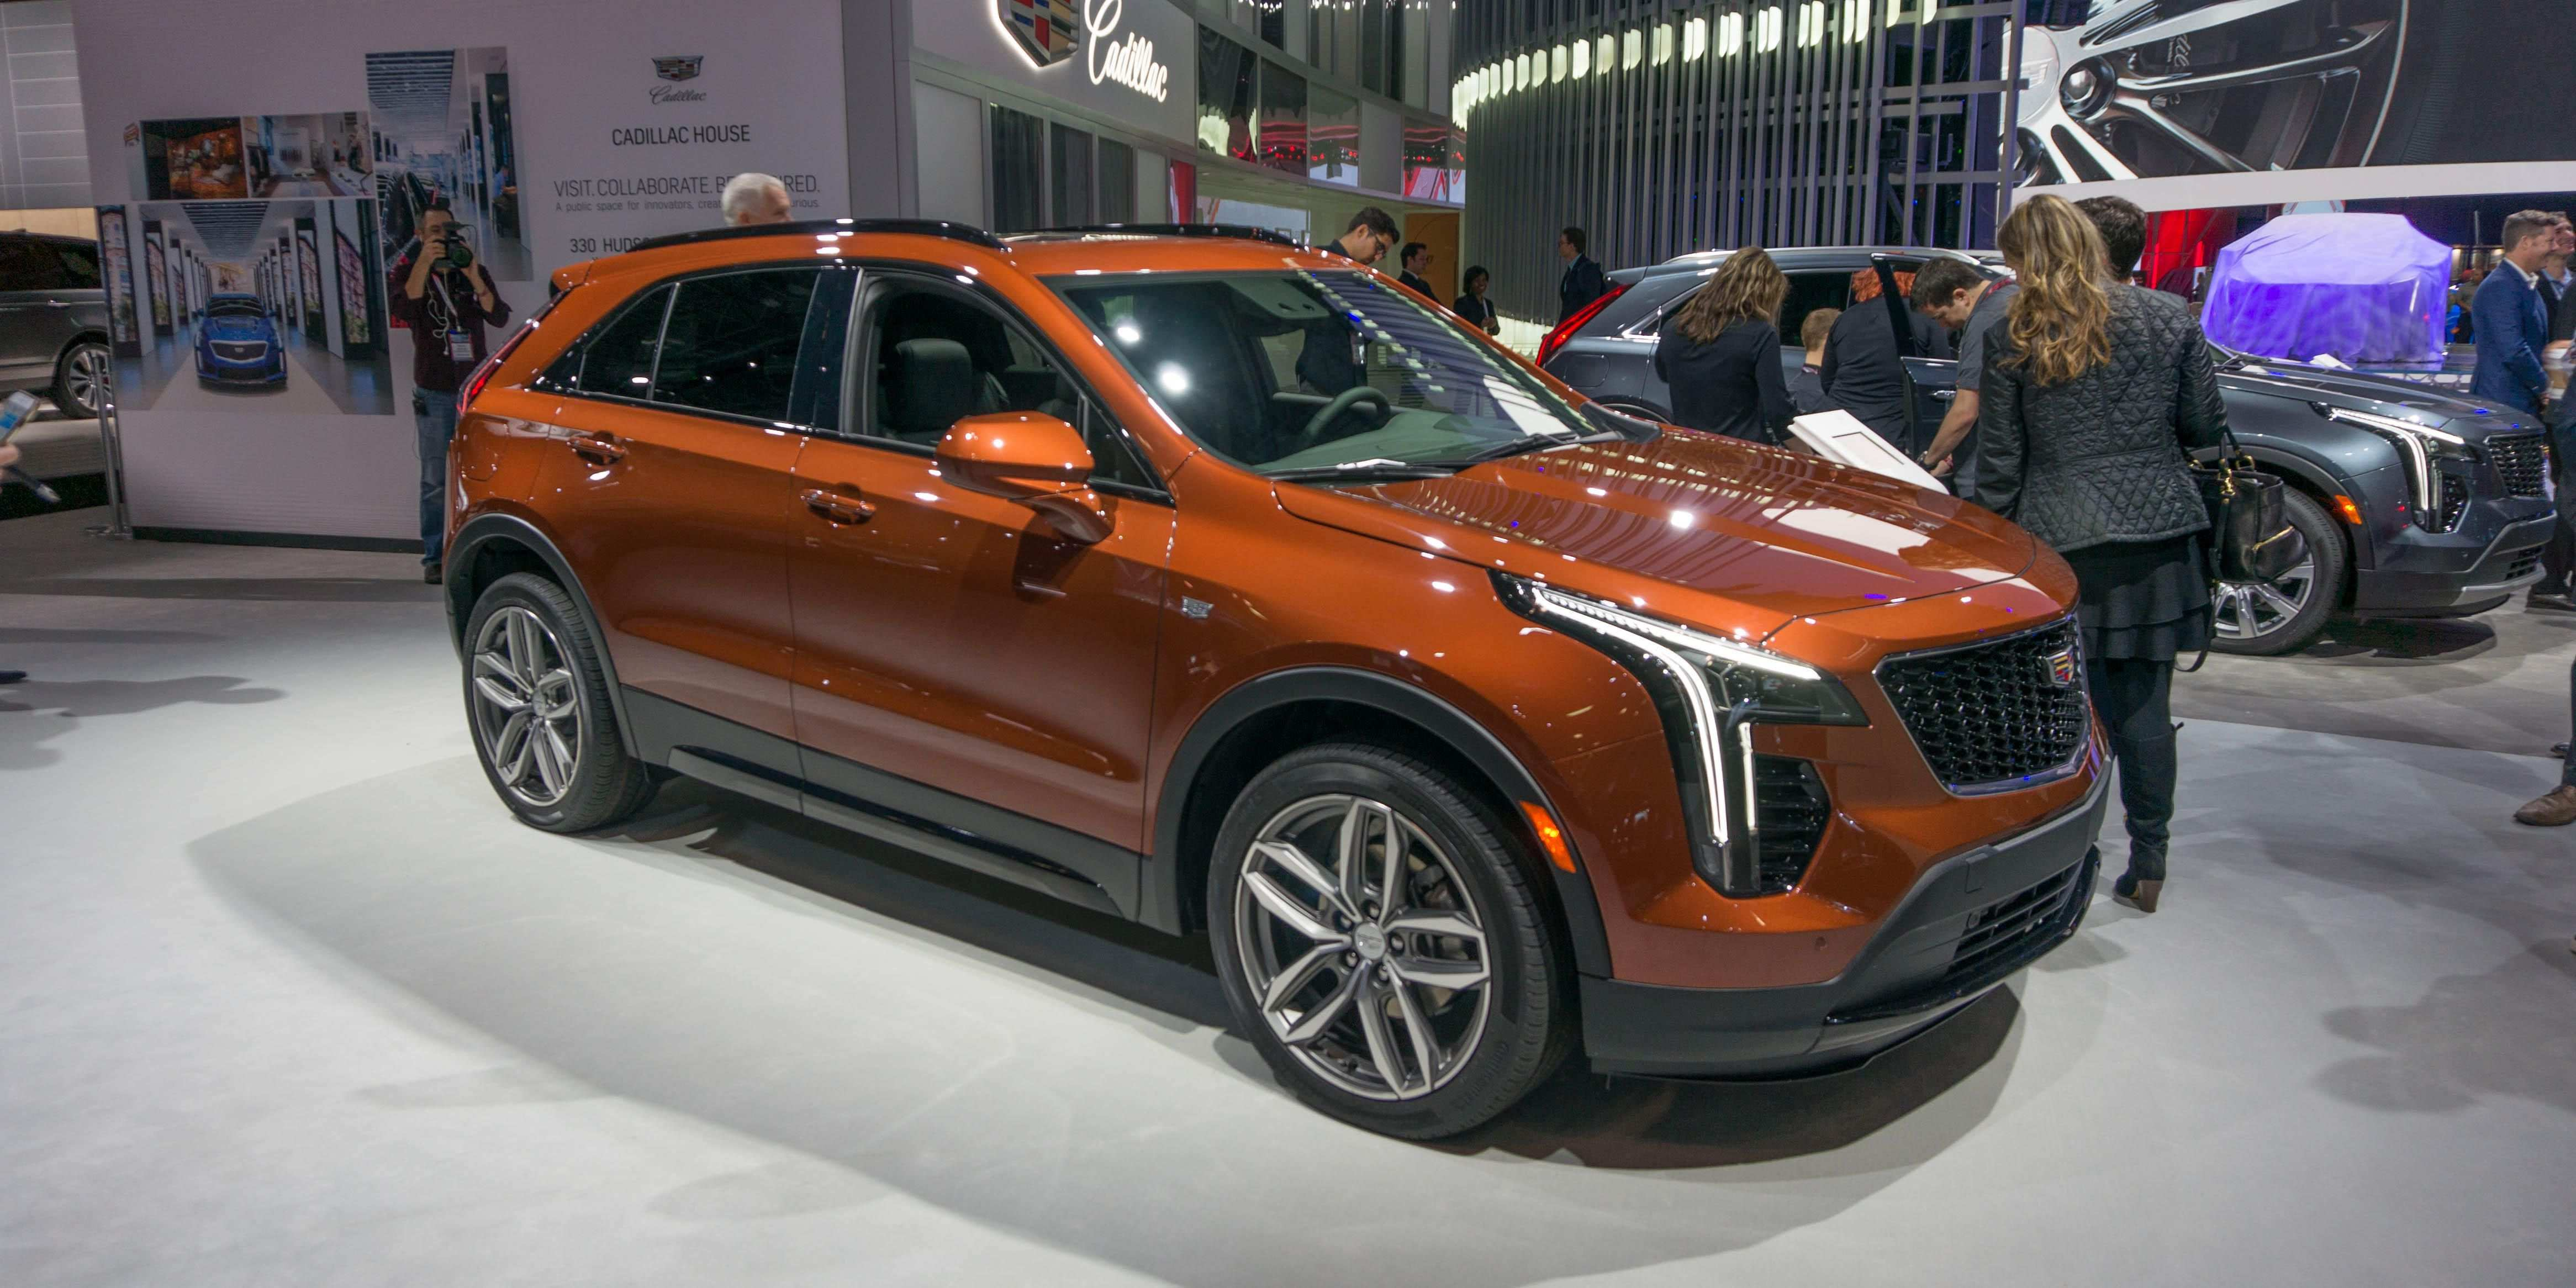 42 Gallery of New Cadillac 2019 Xt4 Price Engine by New Cadillac 2019 Xt4 Price